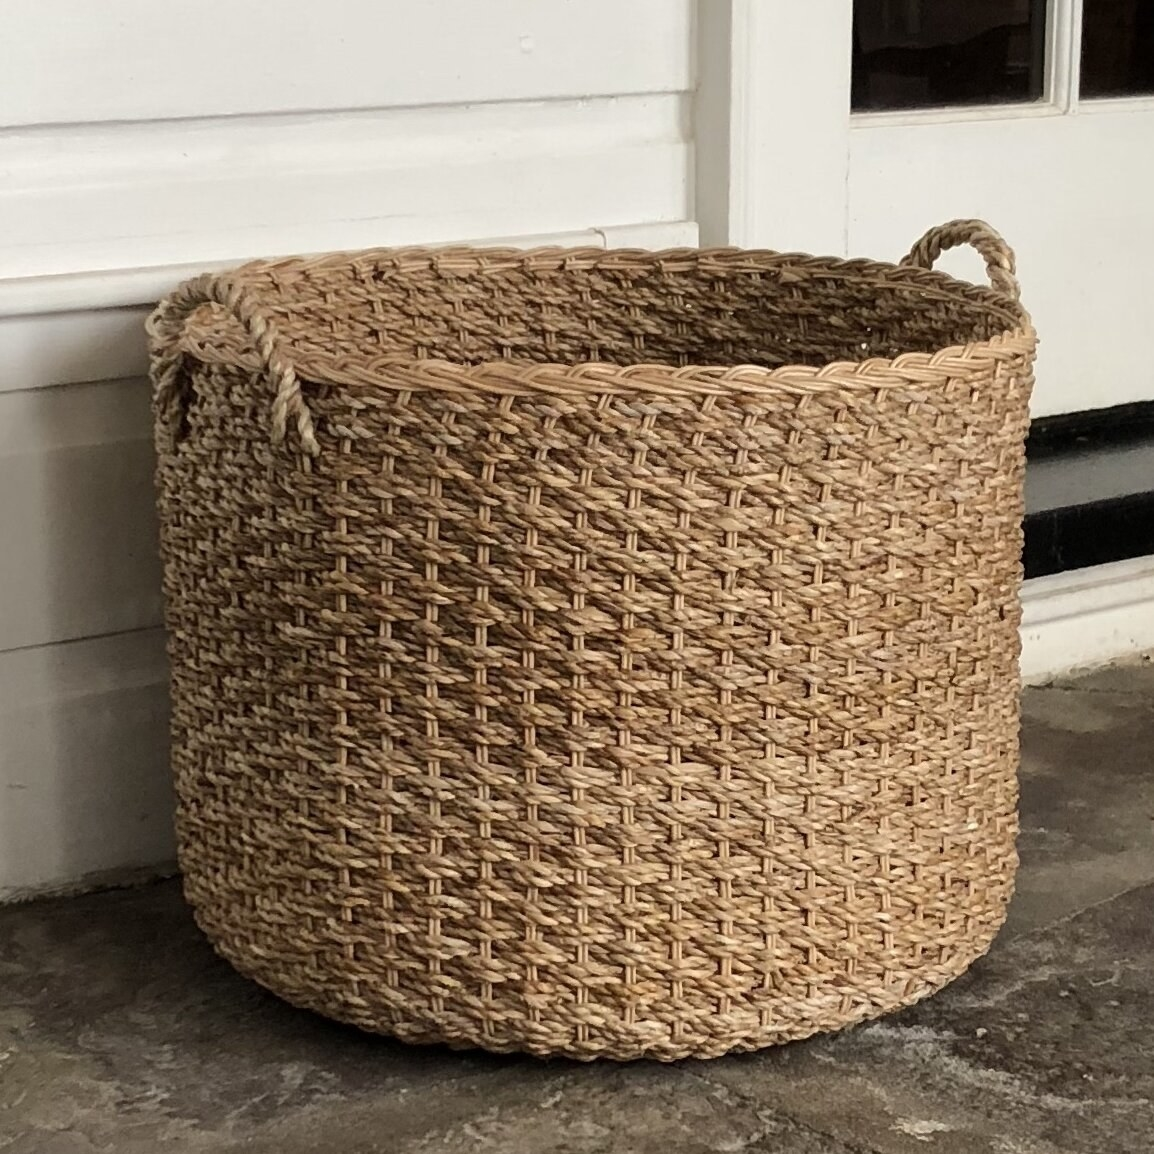 A woven basket outside at a front porch